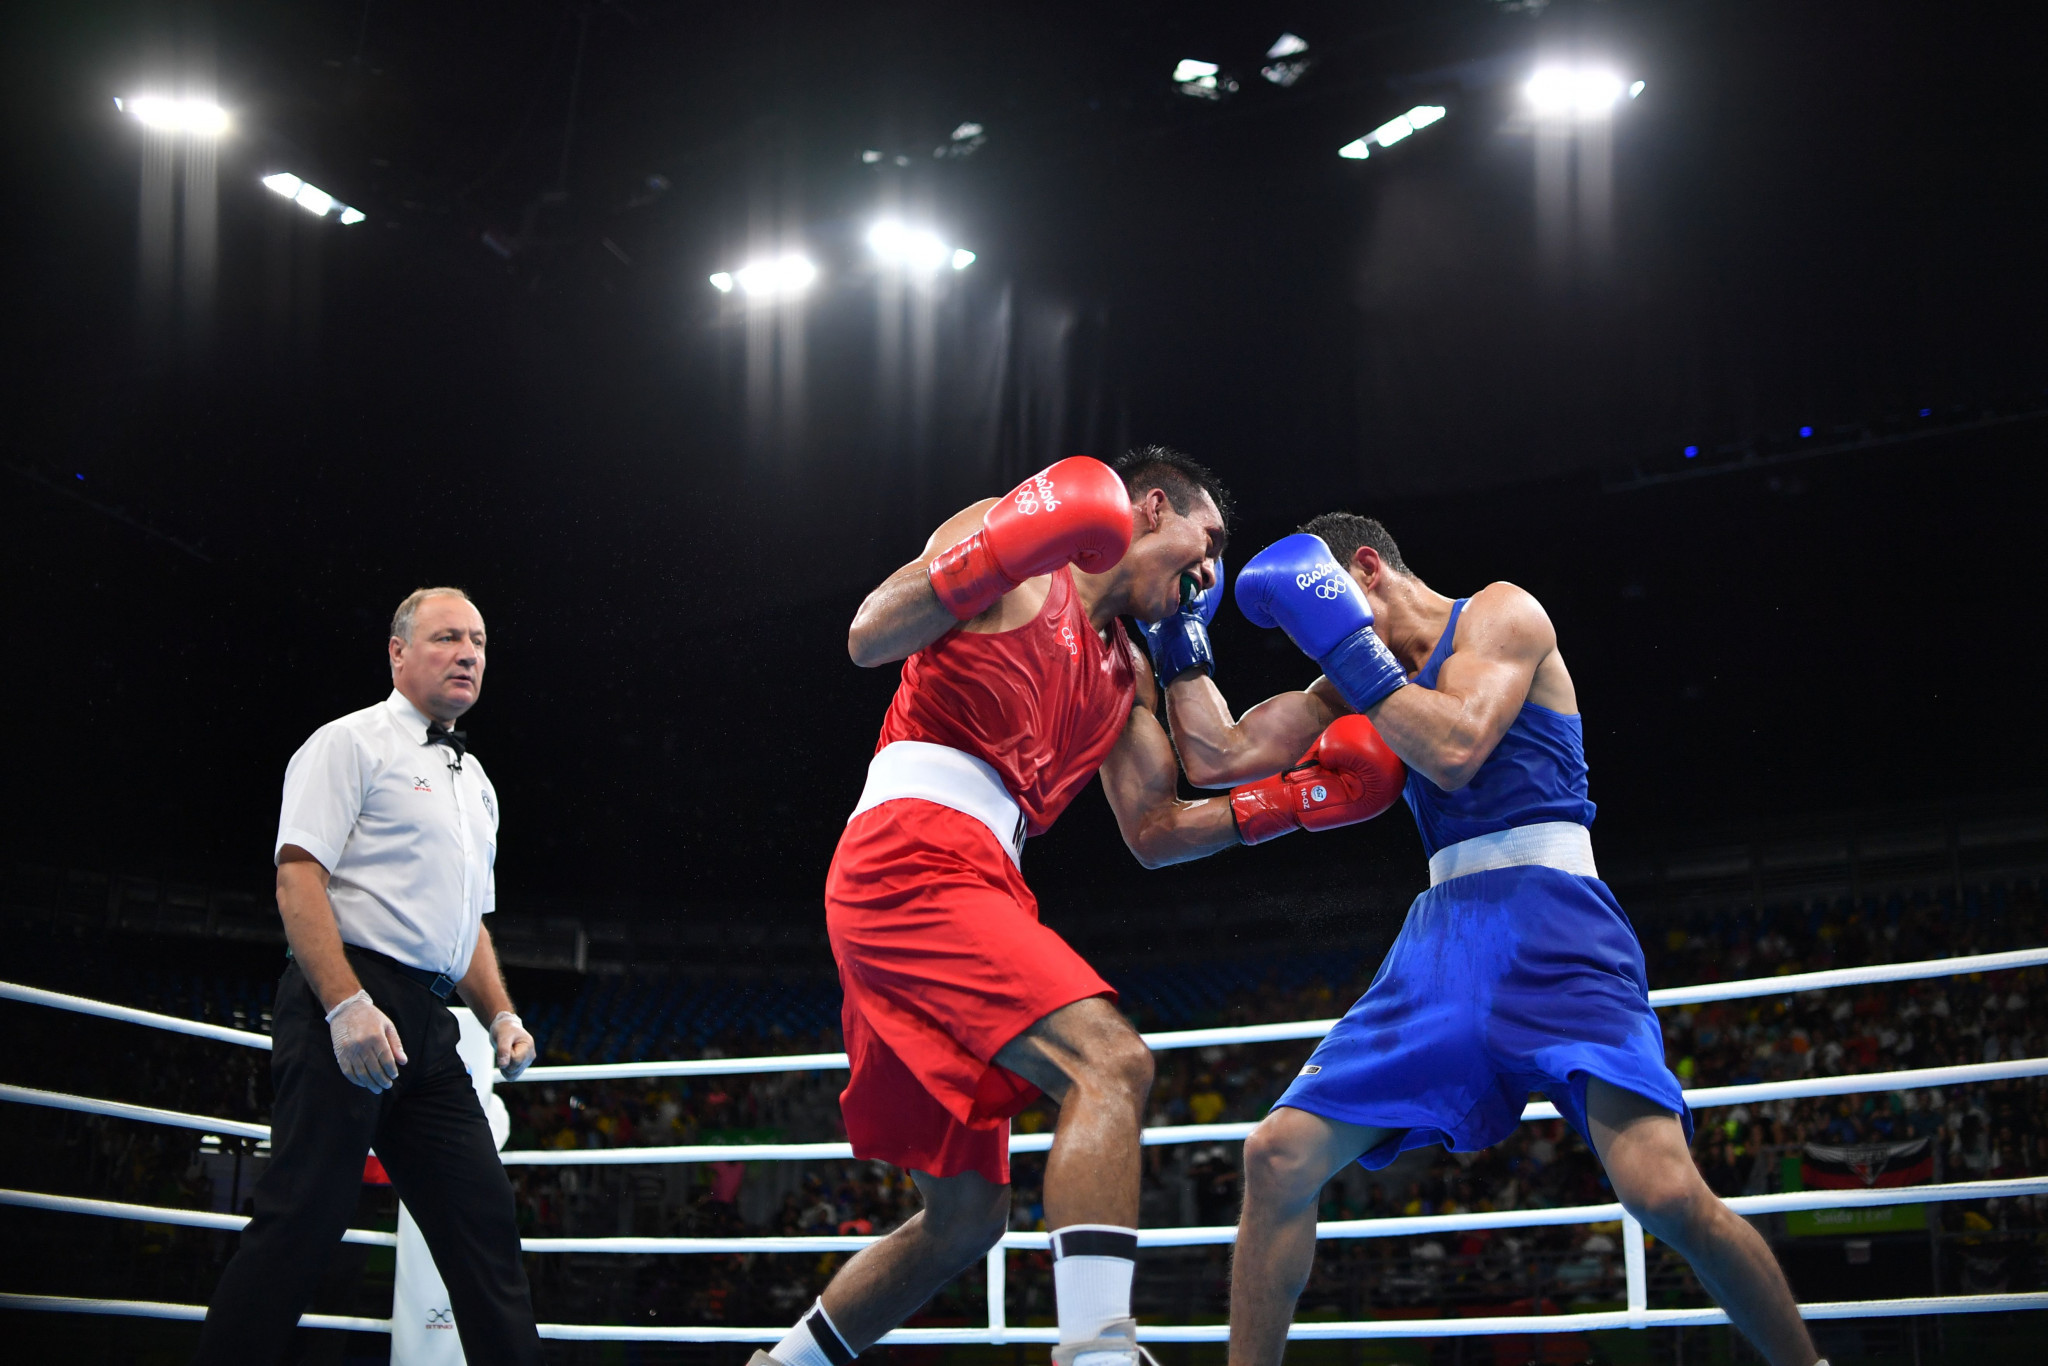 The Americas boxing qualifier is the latest boxing event to be canceled because of COVID-19 ©Getty Images